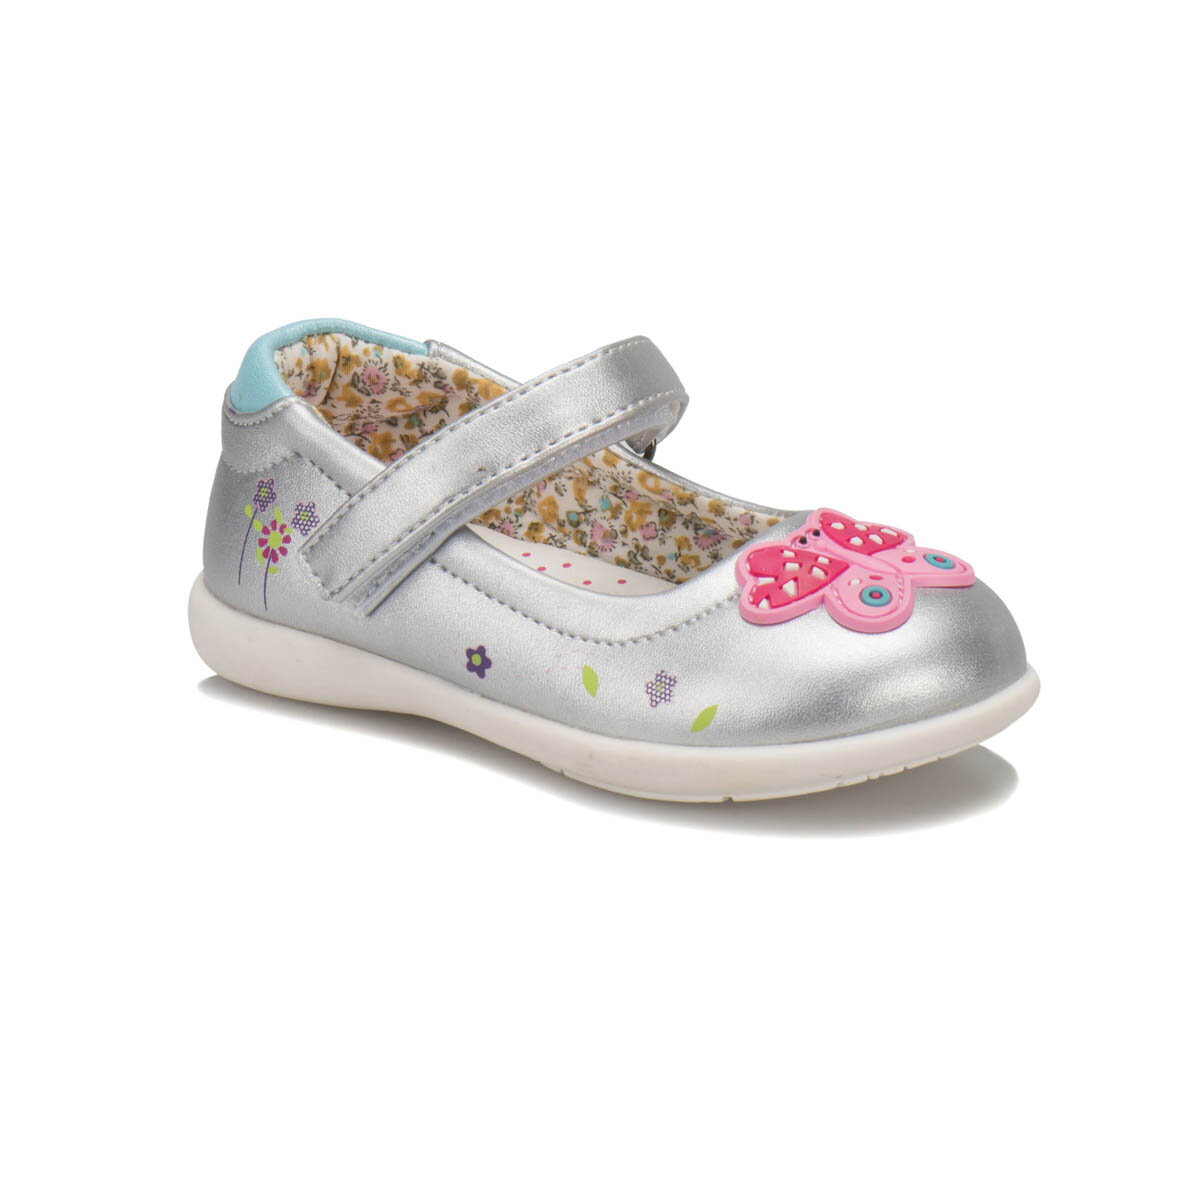 FLO HLL362-35003 Silver Girl Children Shoes Balloon-s